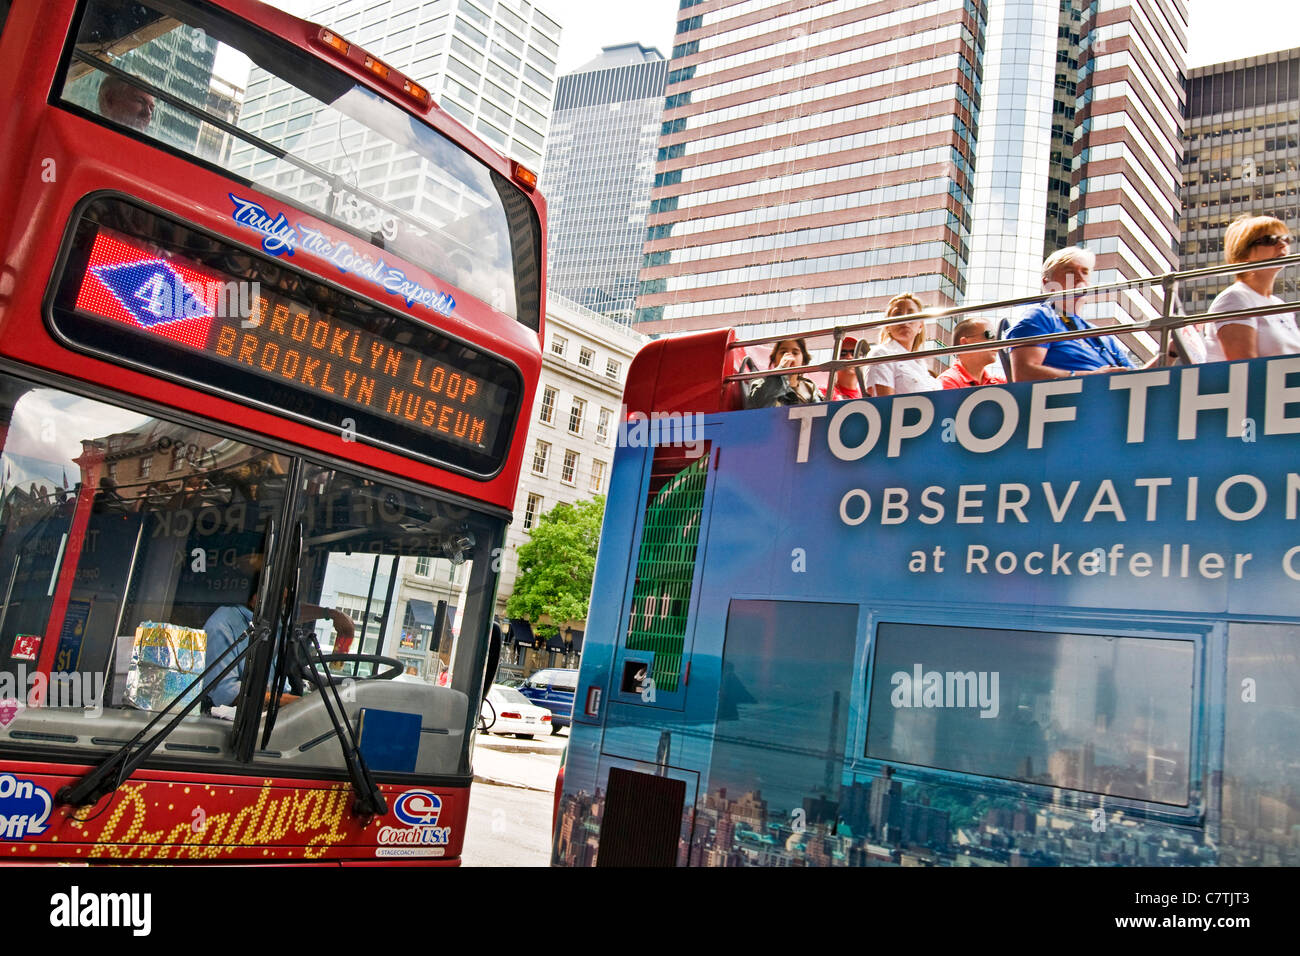 New York City sightseeing bus - Stock Image